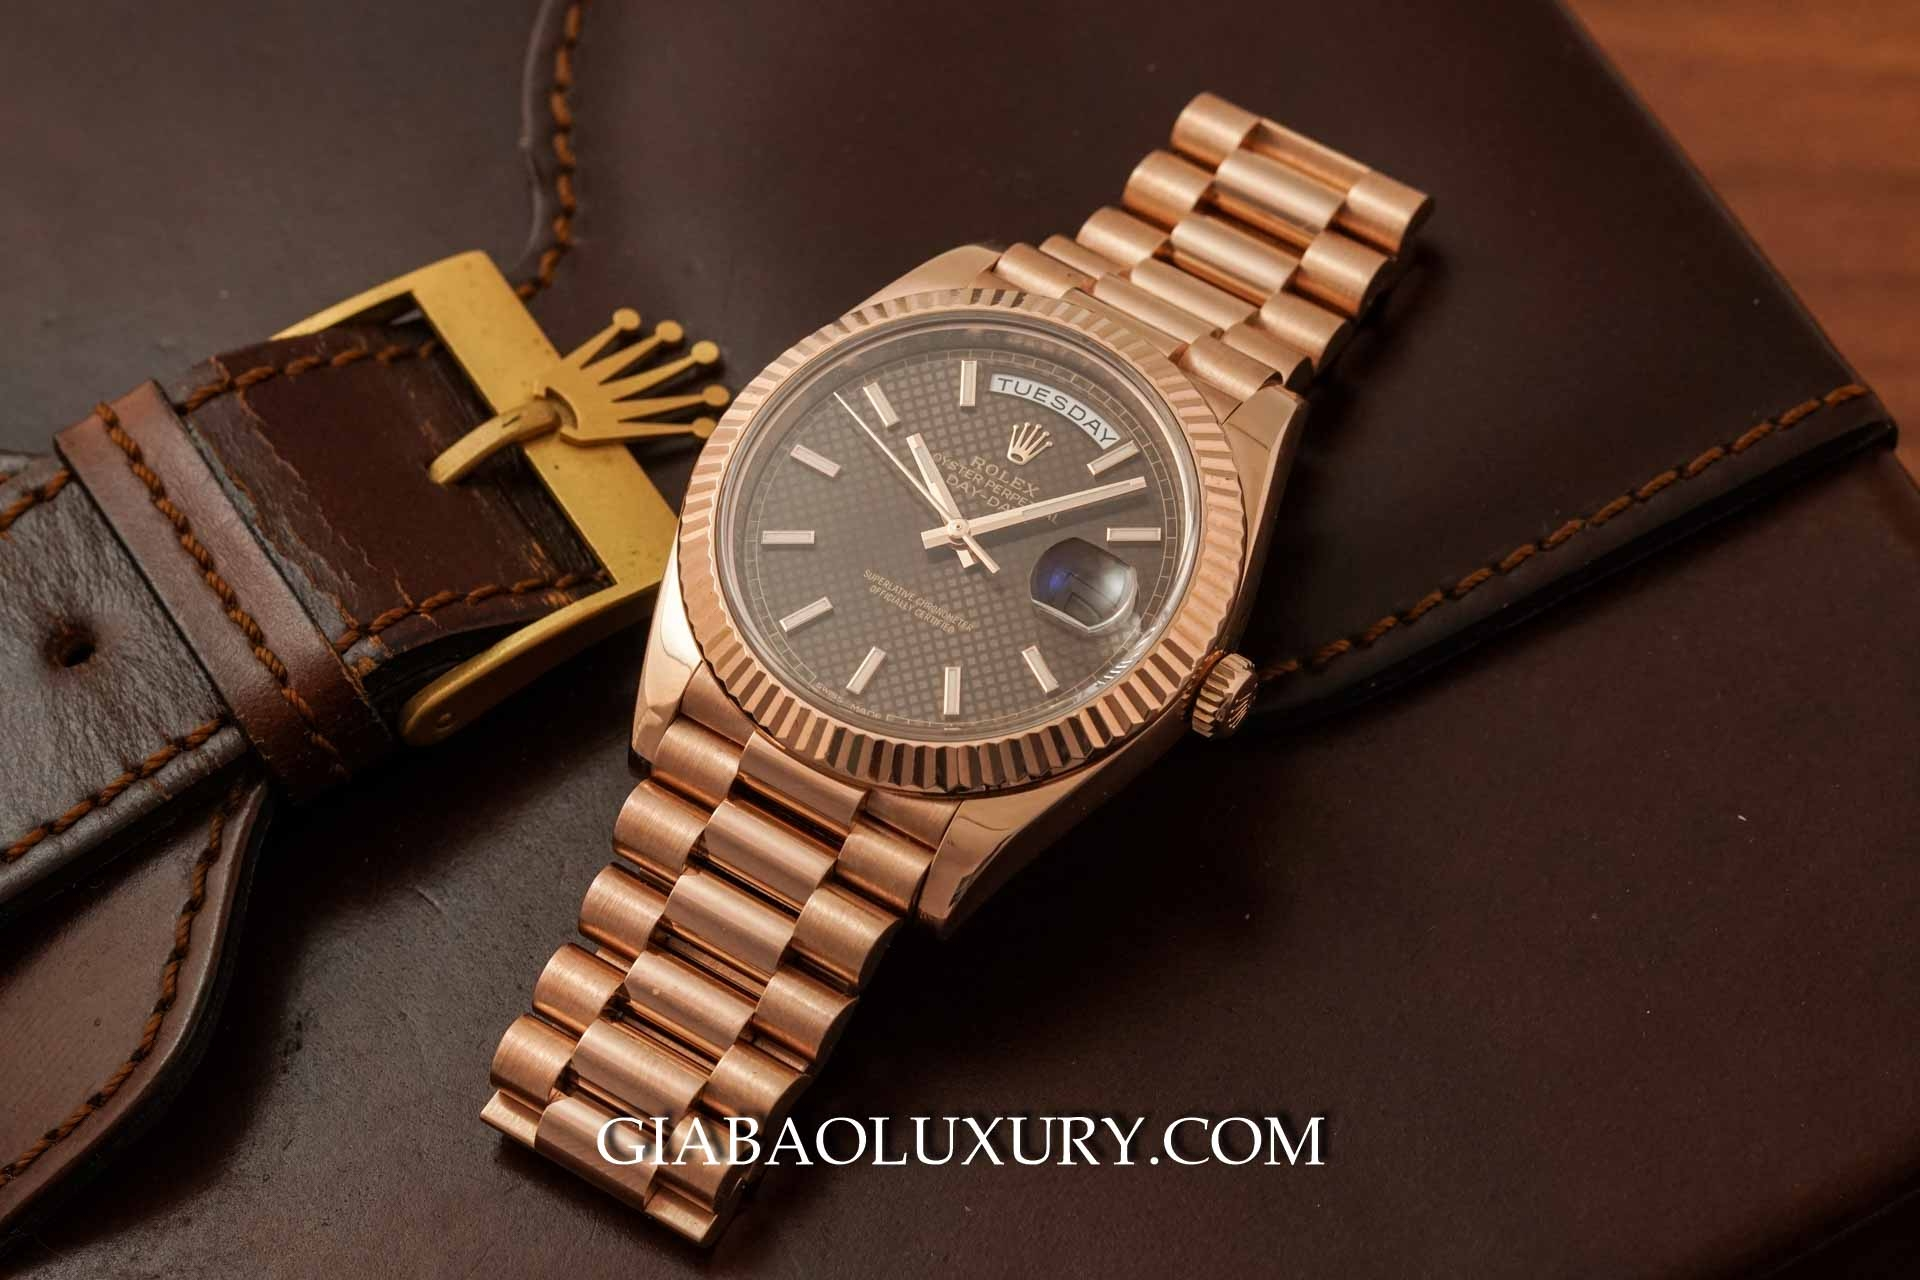 Đồng Hồ Rolex Day Date 228235 Mặt Số Chocolate Họa Tiết Chéo